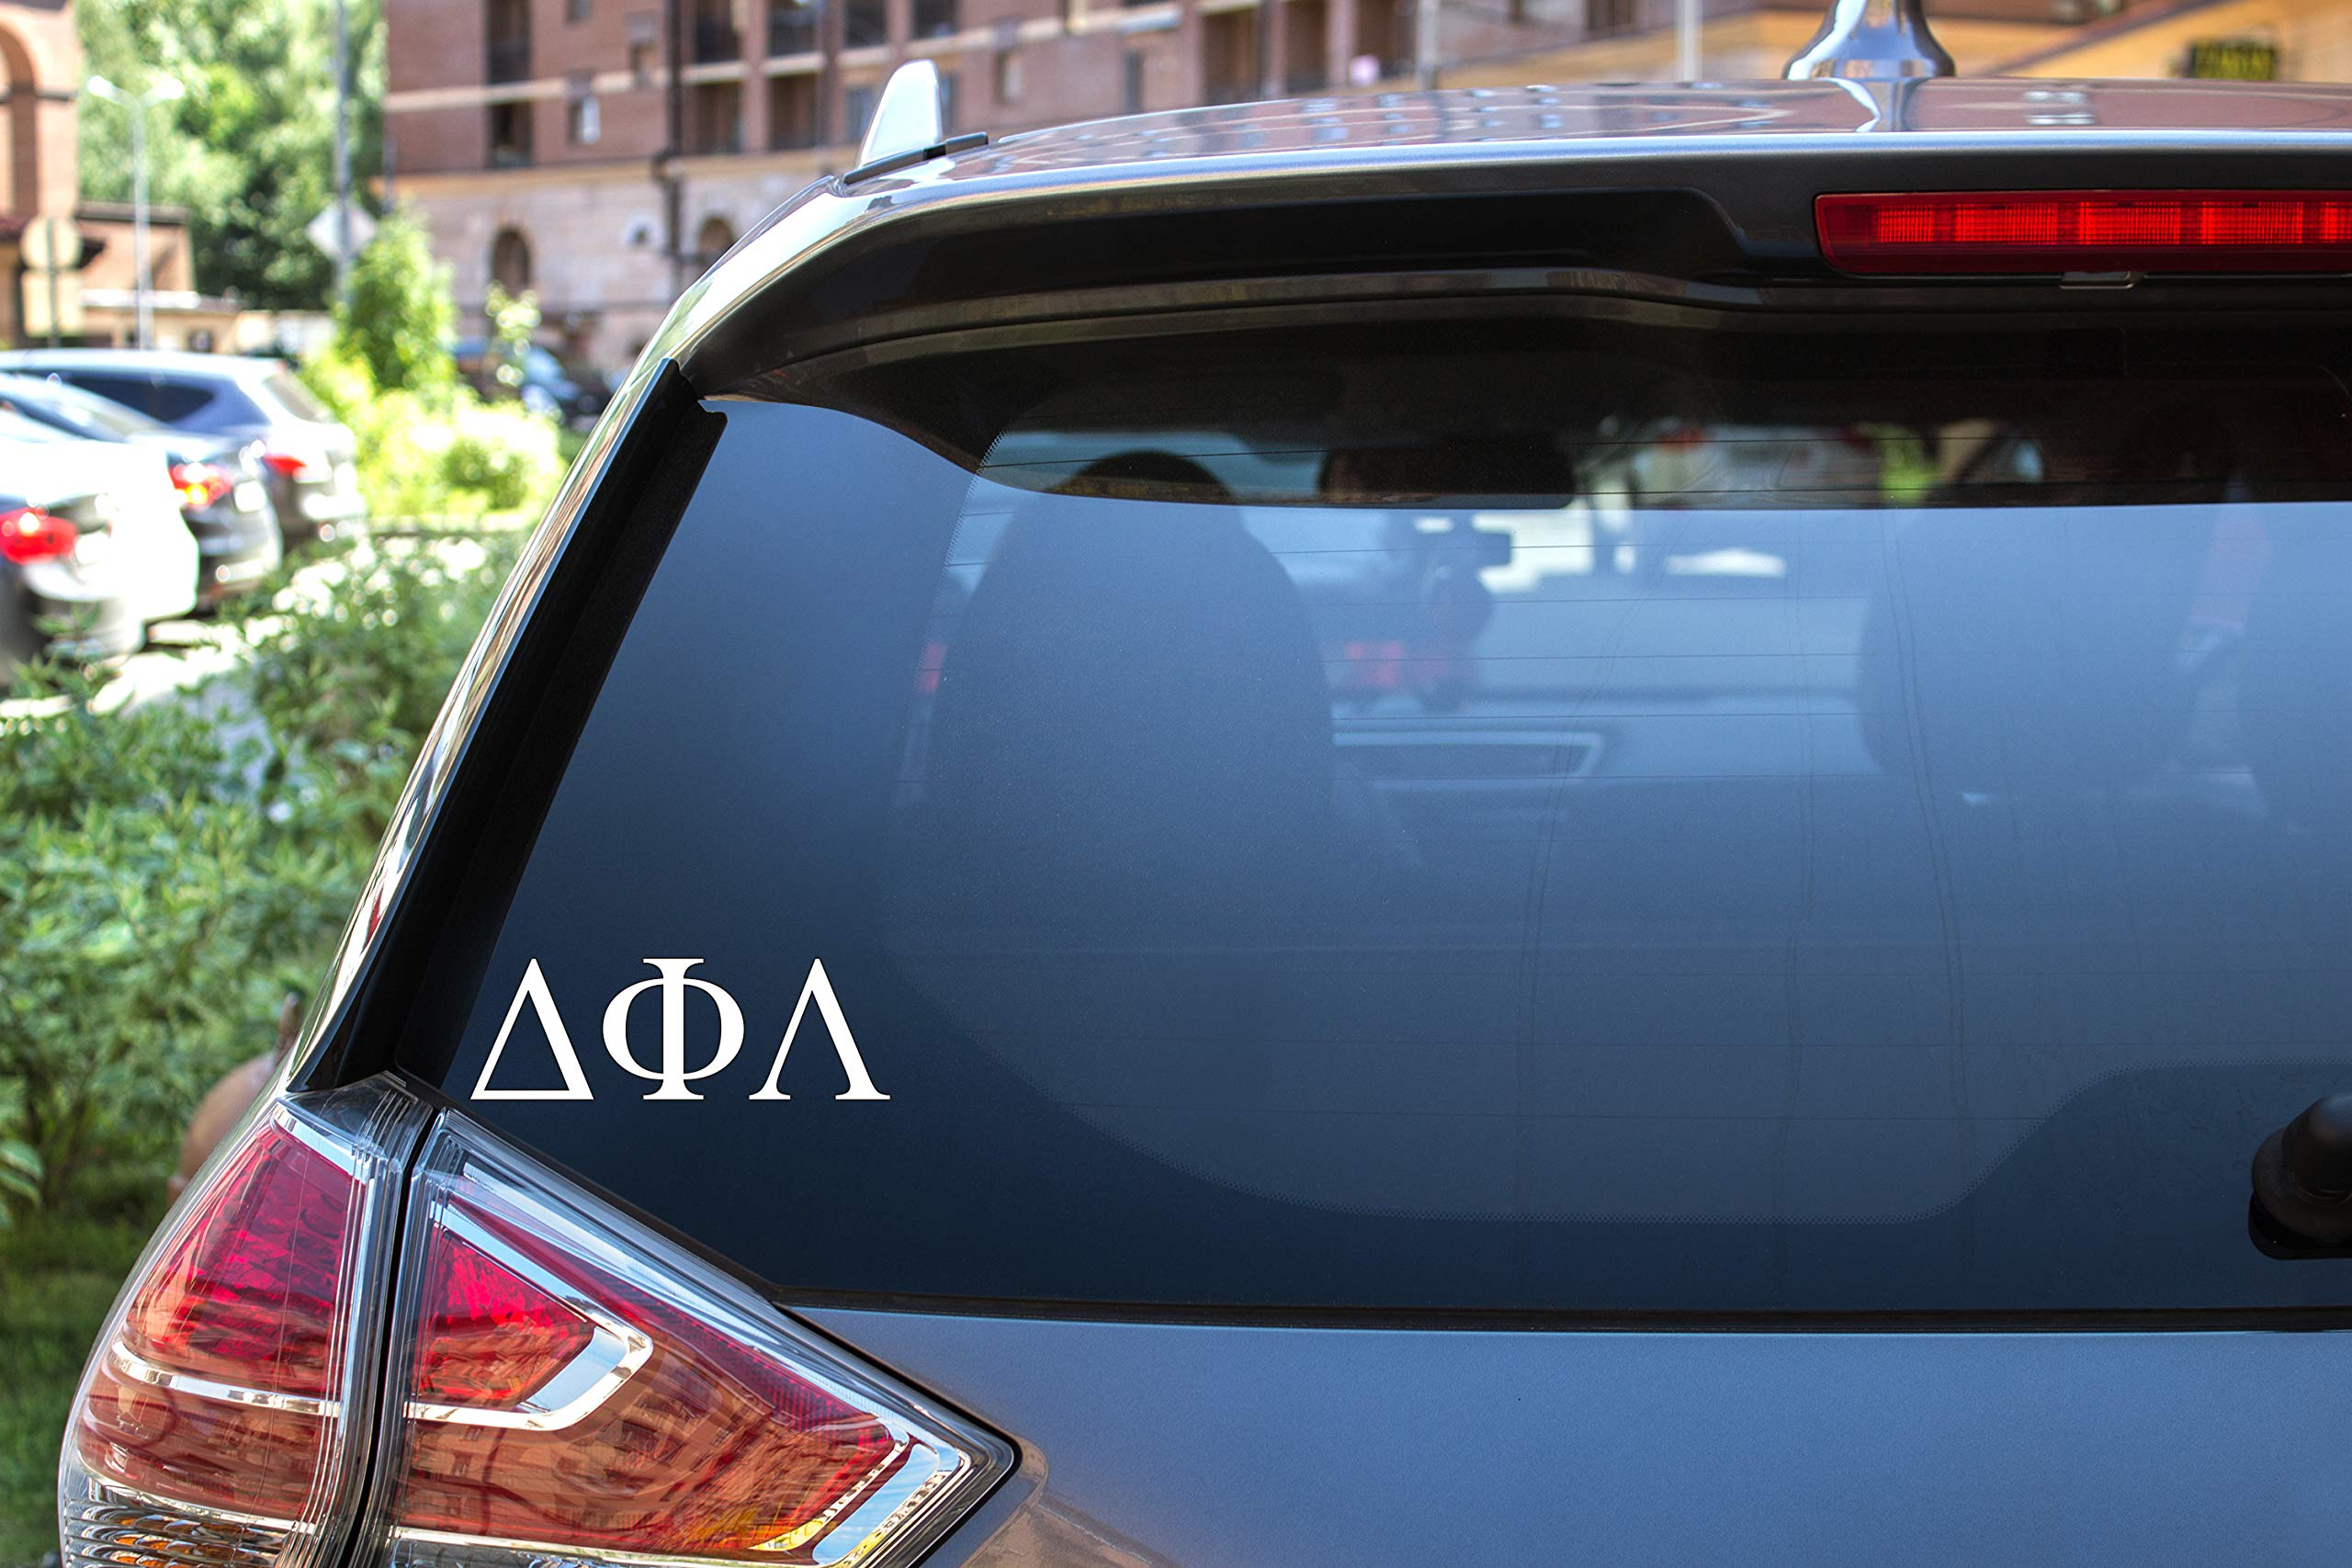 "Delta Phi Lambda Sticker Greek Sorority Decal for Car, Laptop, Windows, Officially Licensed Product, Monogram Design 2.5"" Tall - White"